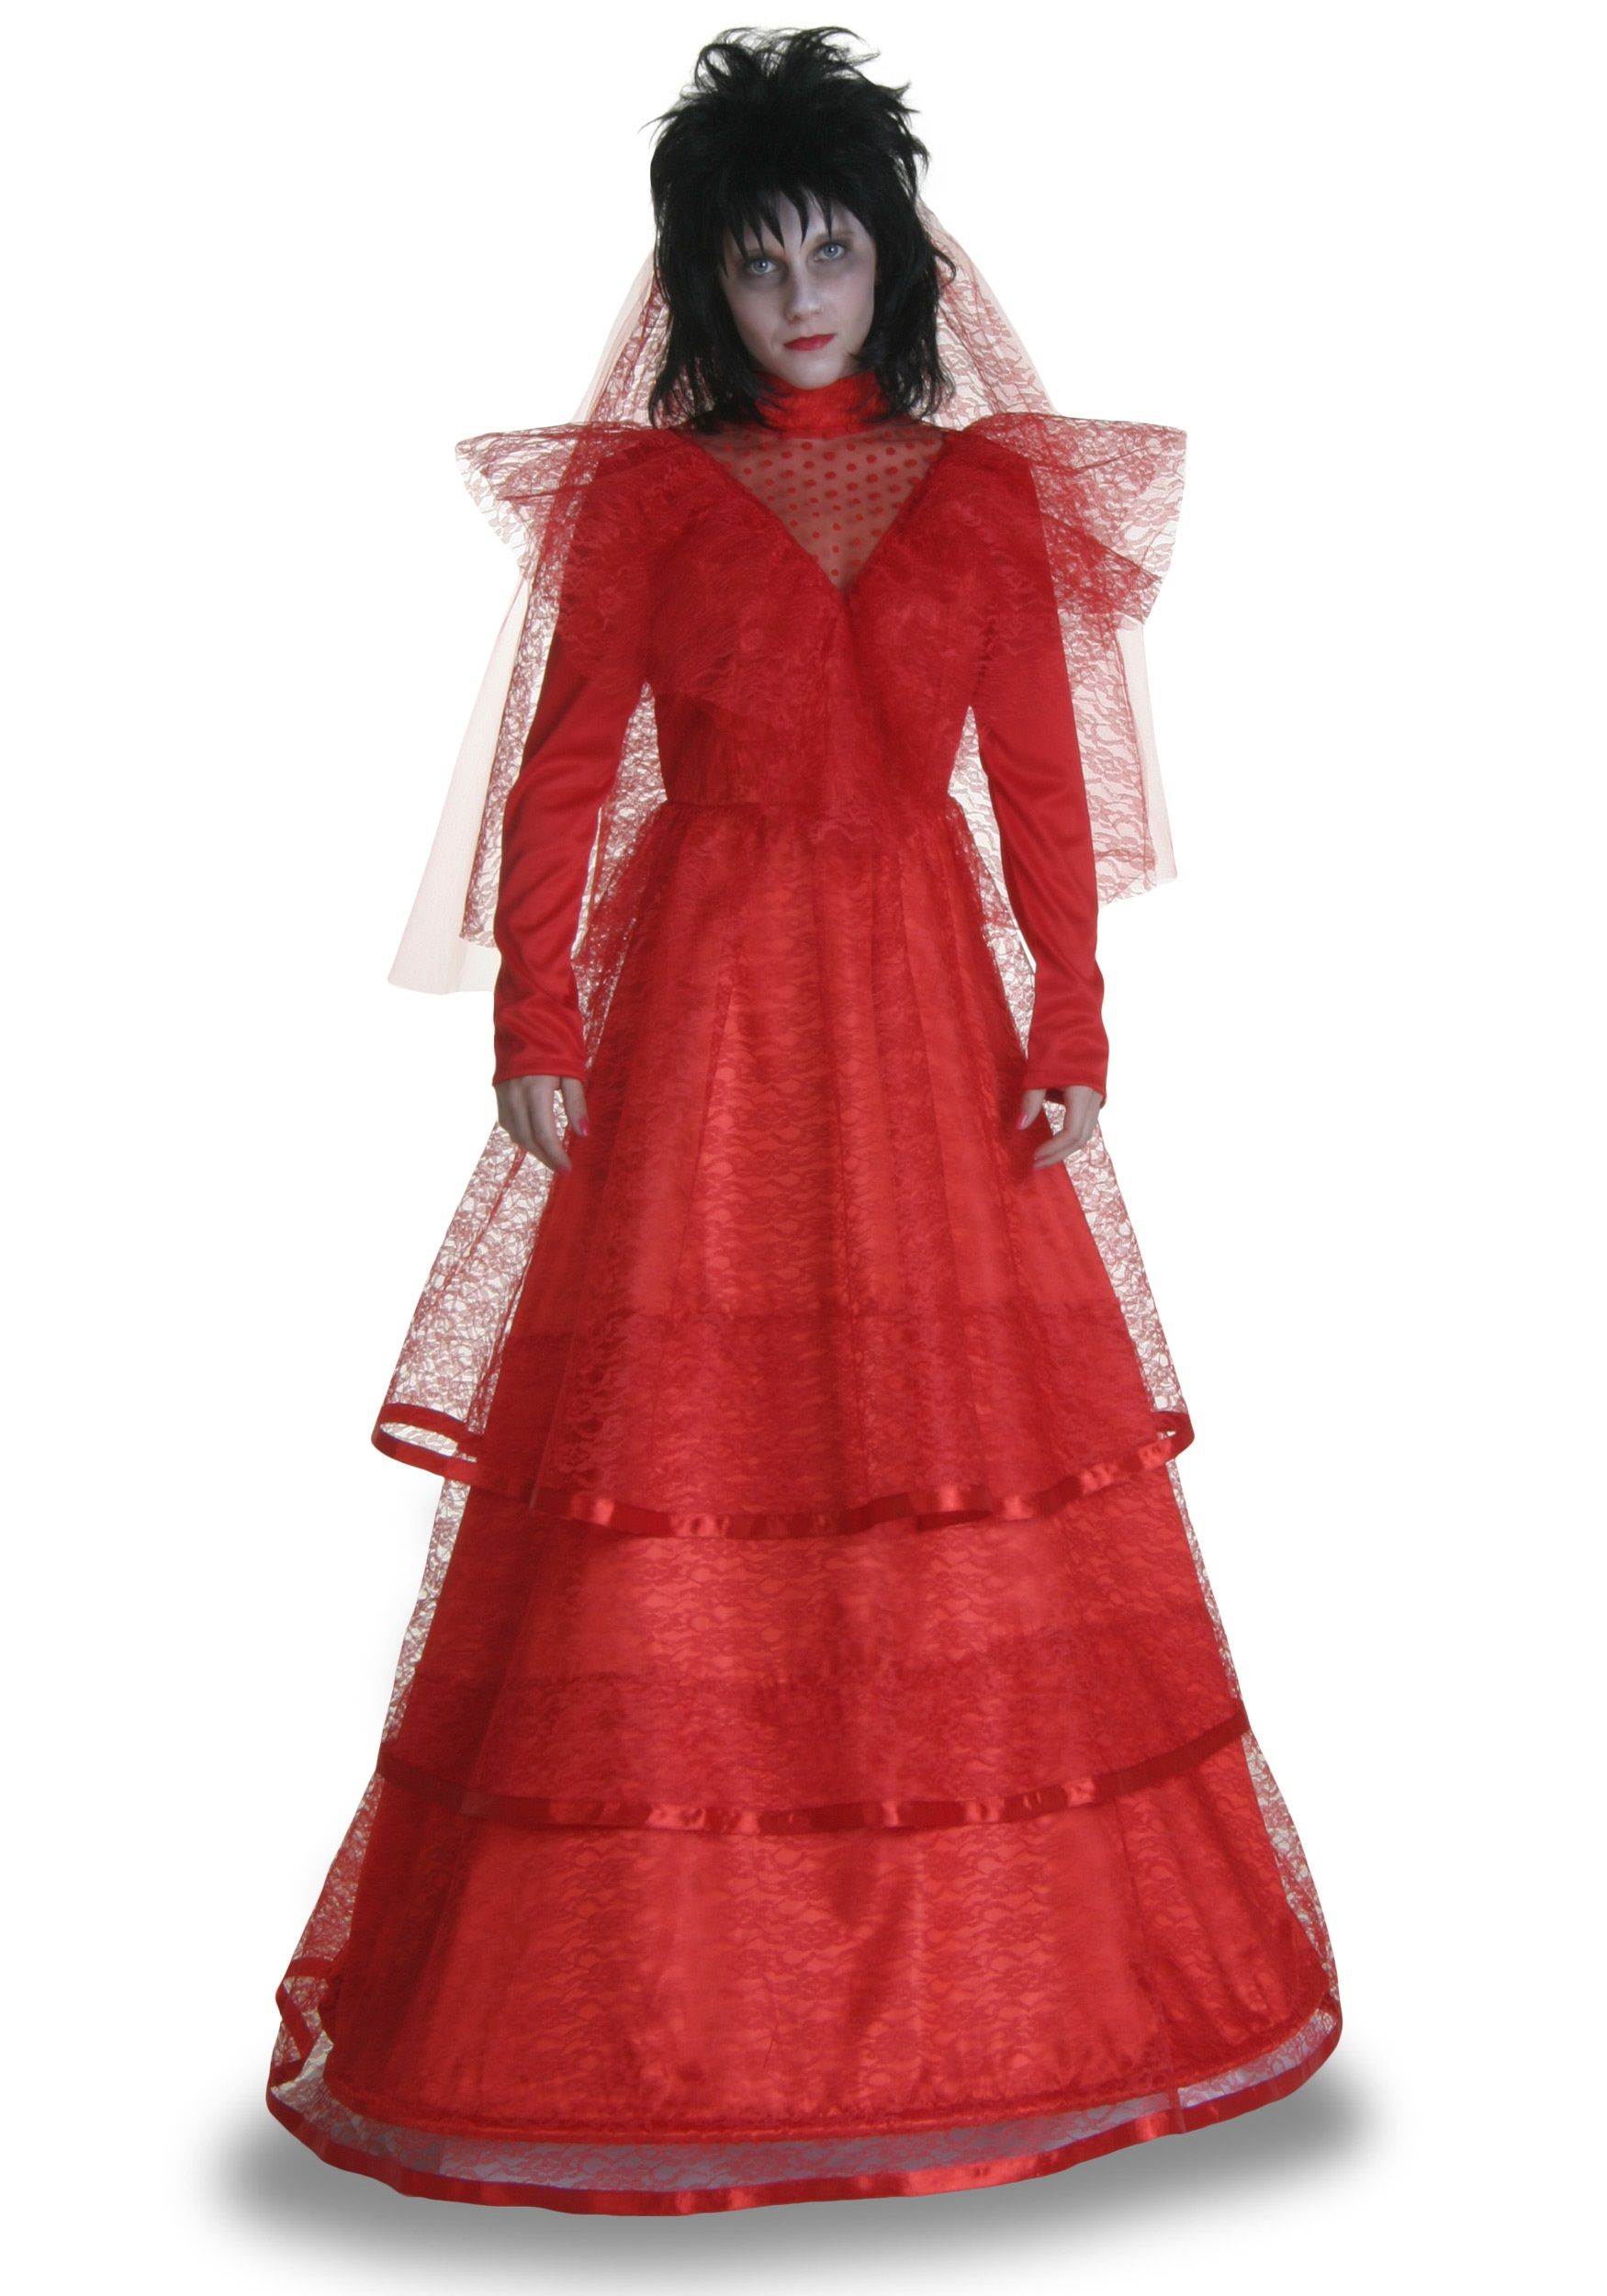 red gothic wedding dress Beetlejuice Lydia Deetz s Red Gothic Wedding Dress Halloween Party with Tim Burton